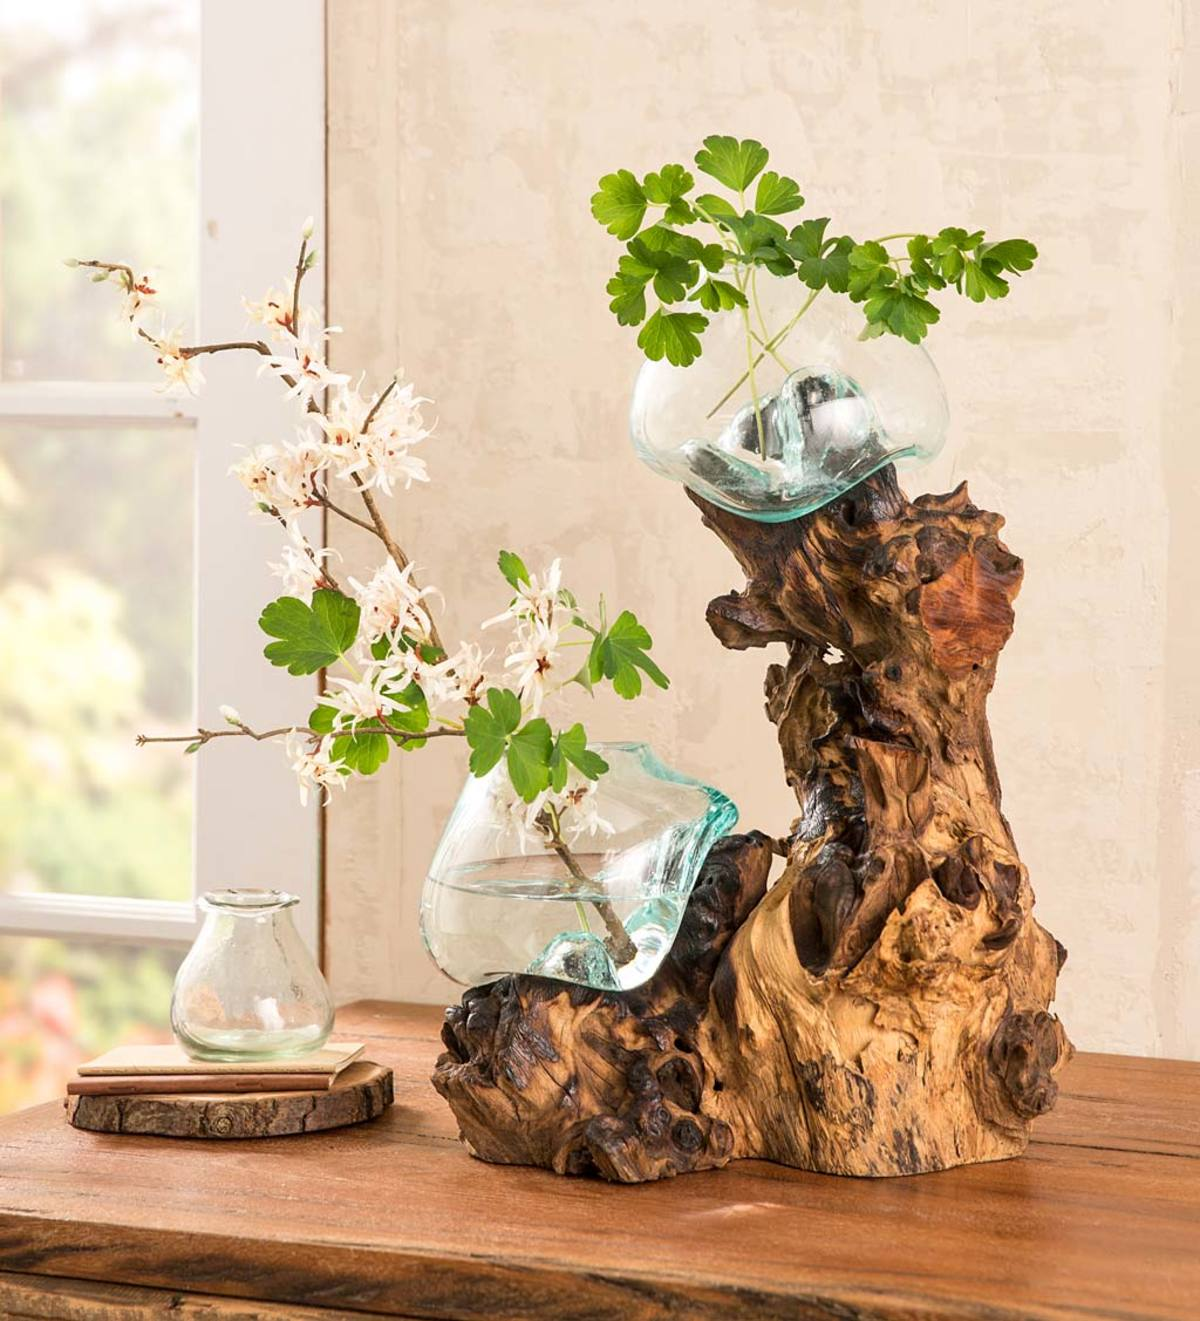 Dual Glass Bowls and Driftwood Sculpture